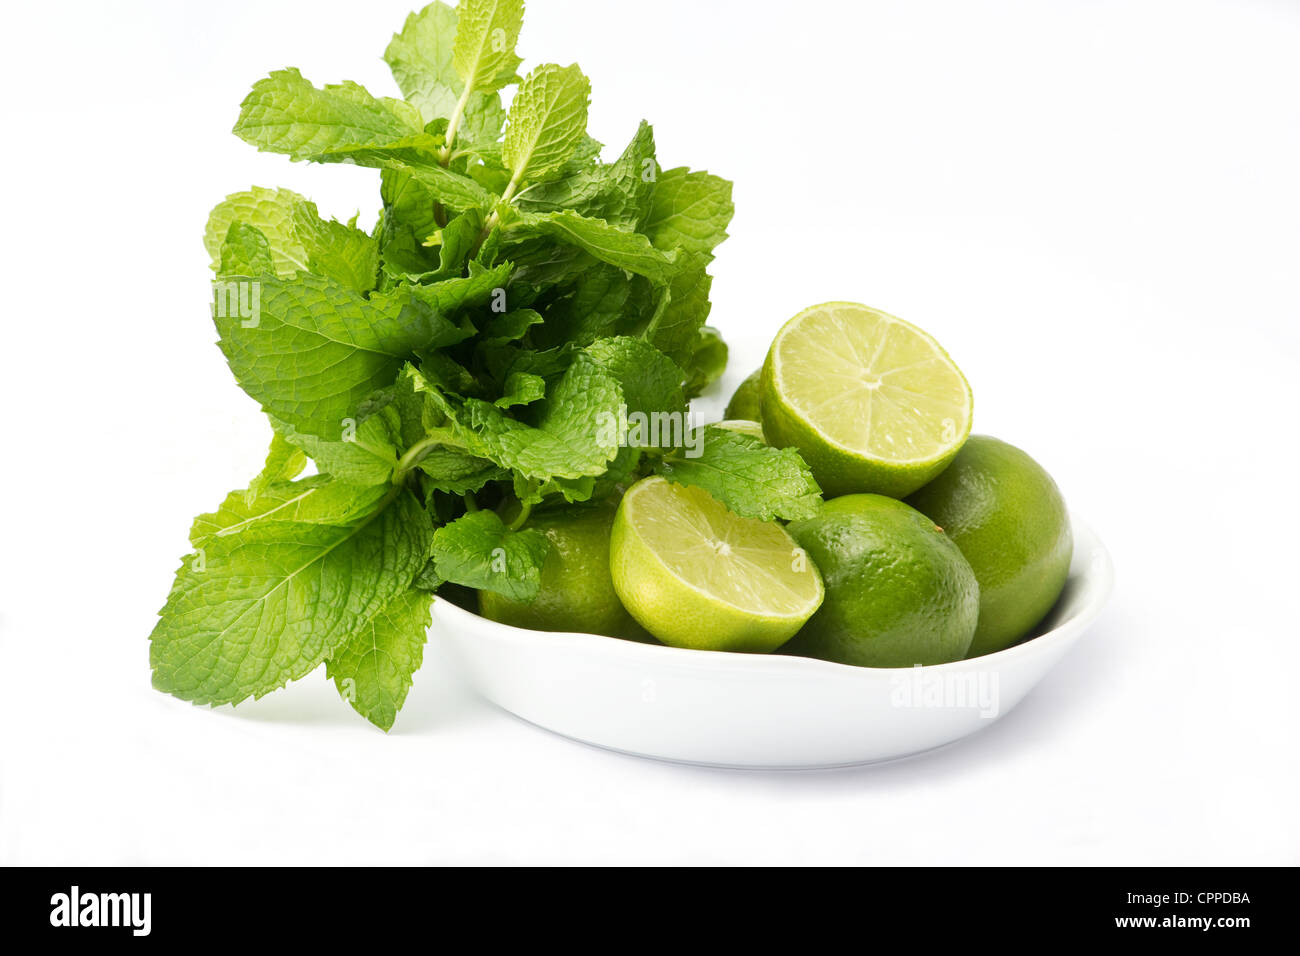 Bowl with limes and a bunch of mint on white background - Stock Image